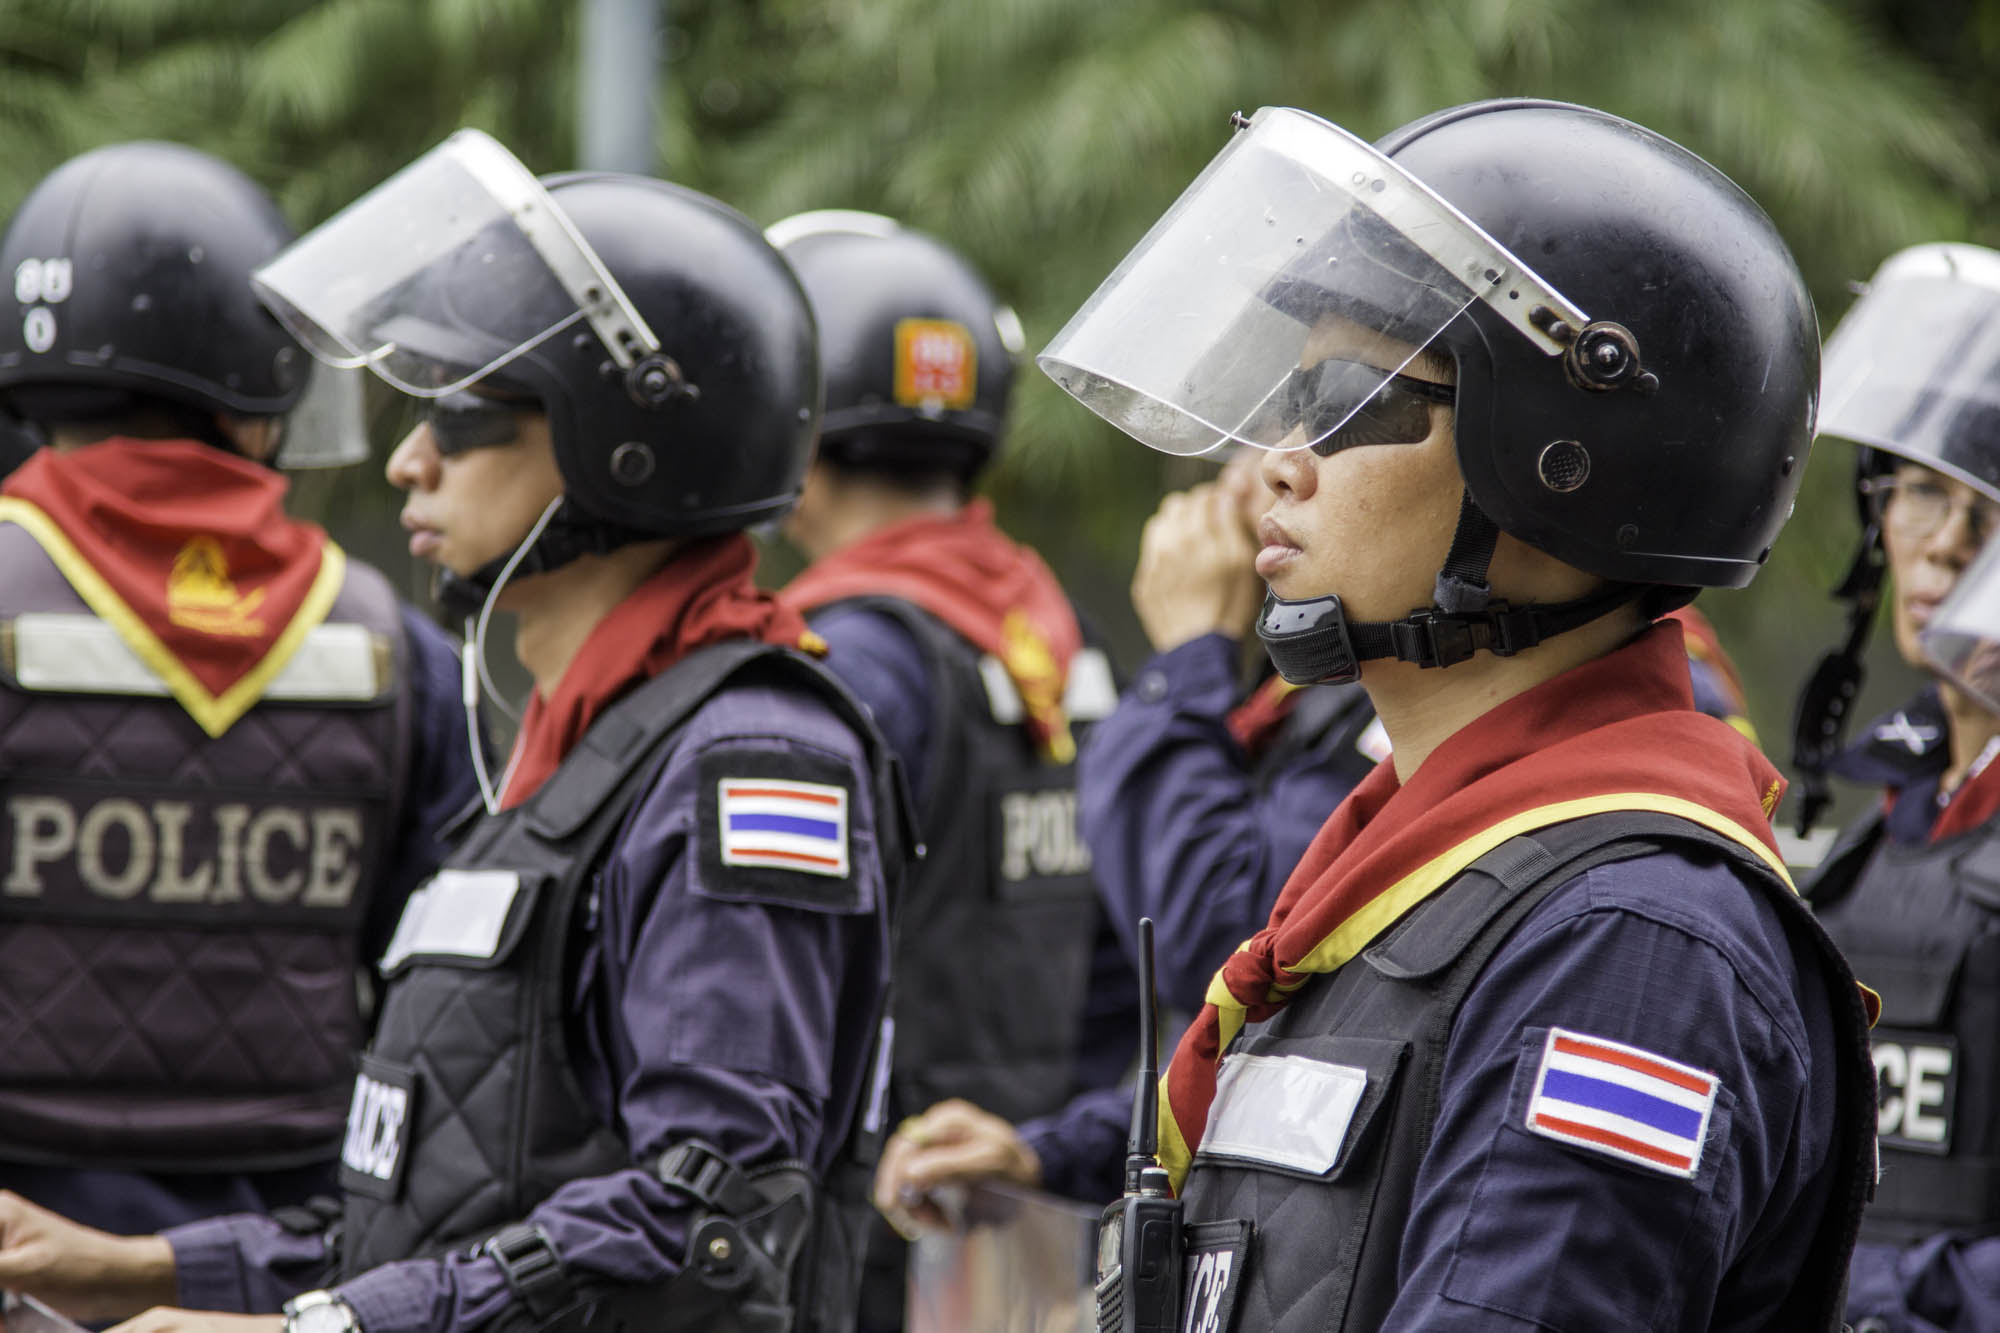 Thailand issues arrest warrant for second suspect in deadly blasts